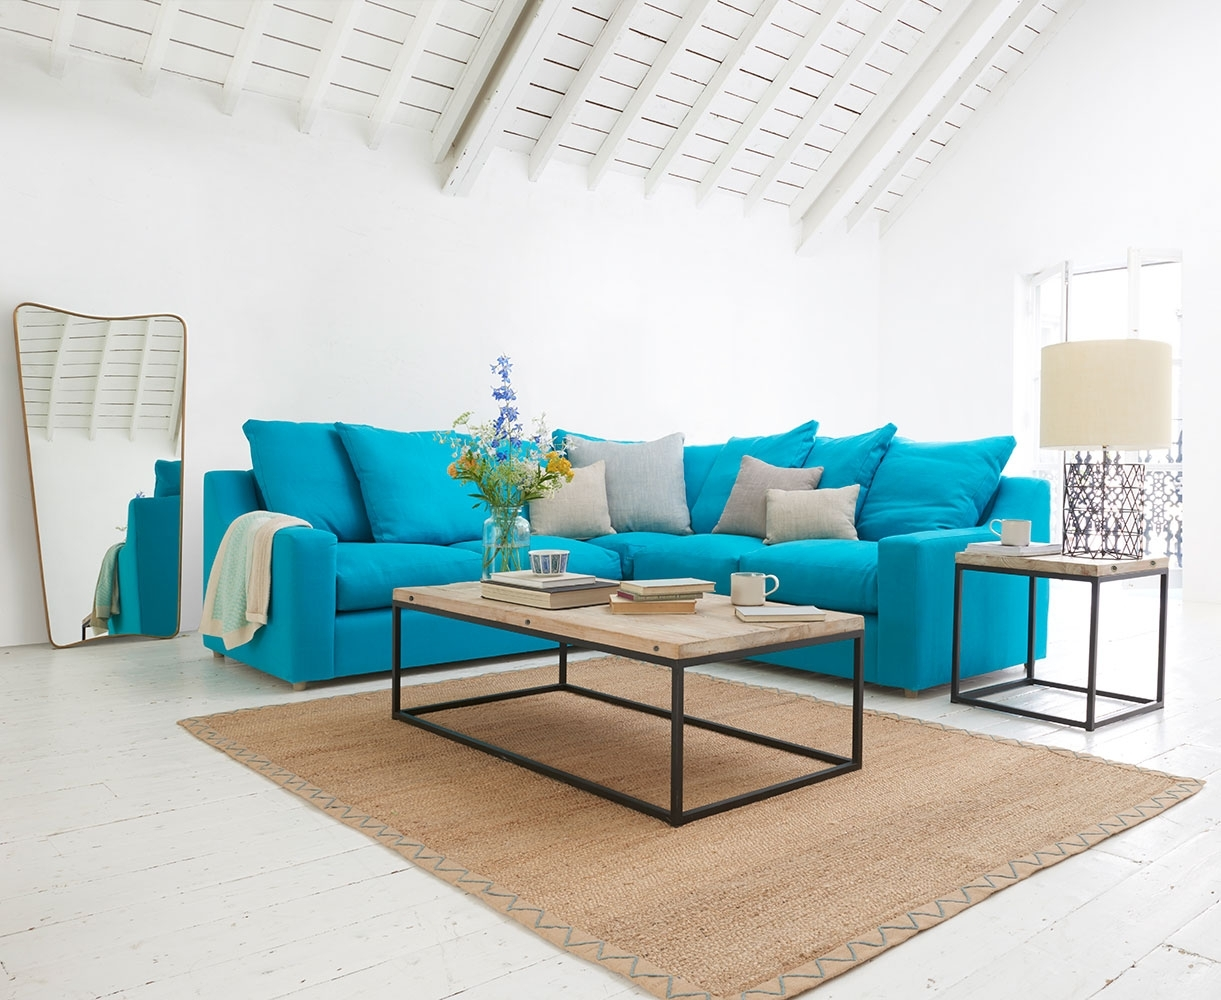 Sofas Made In Blighty | Cloud Corner | Loaf With Regard To Turquoise Sofas (View 4 of 10)